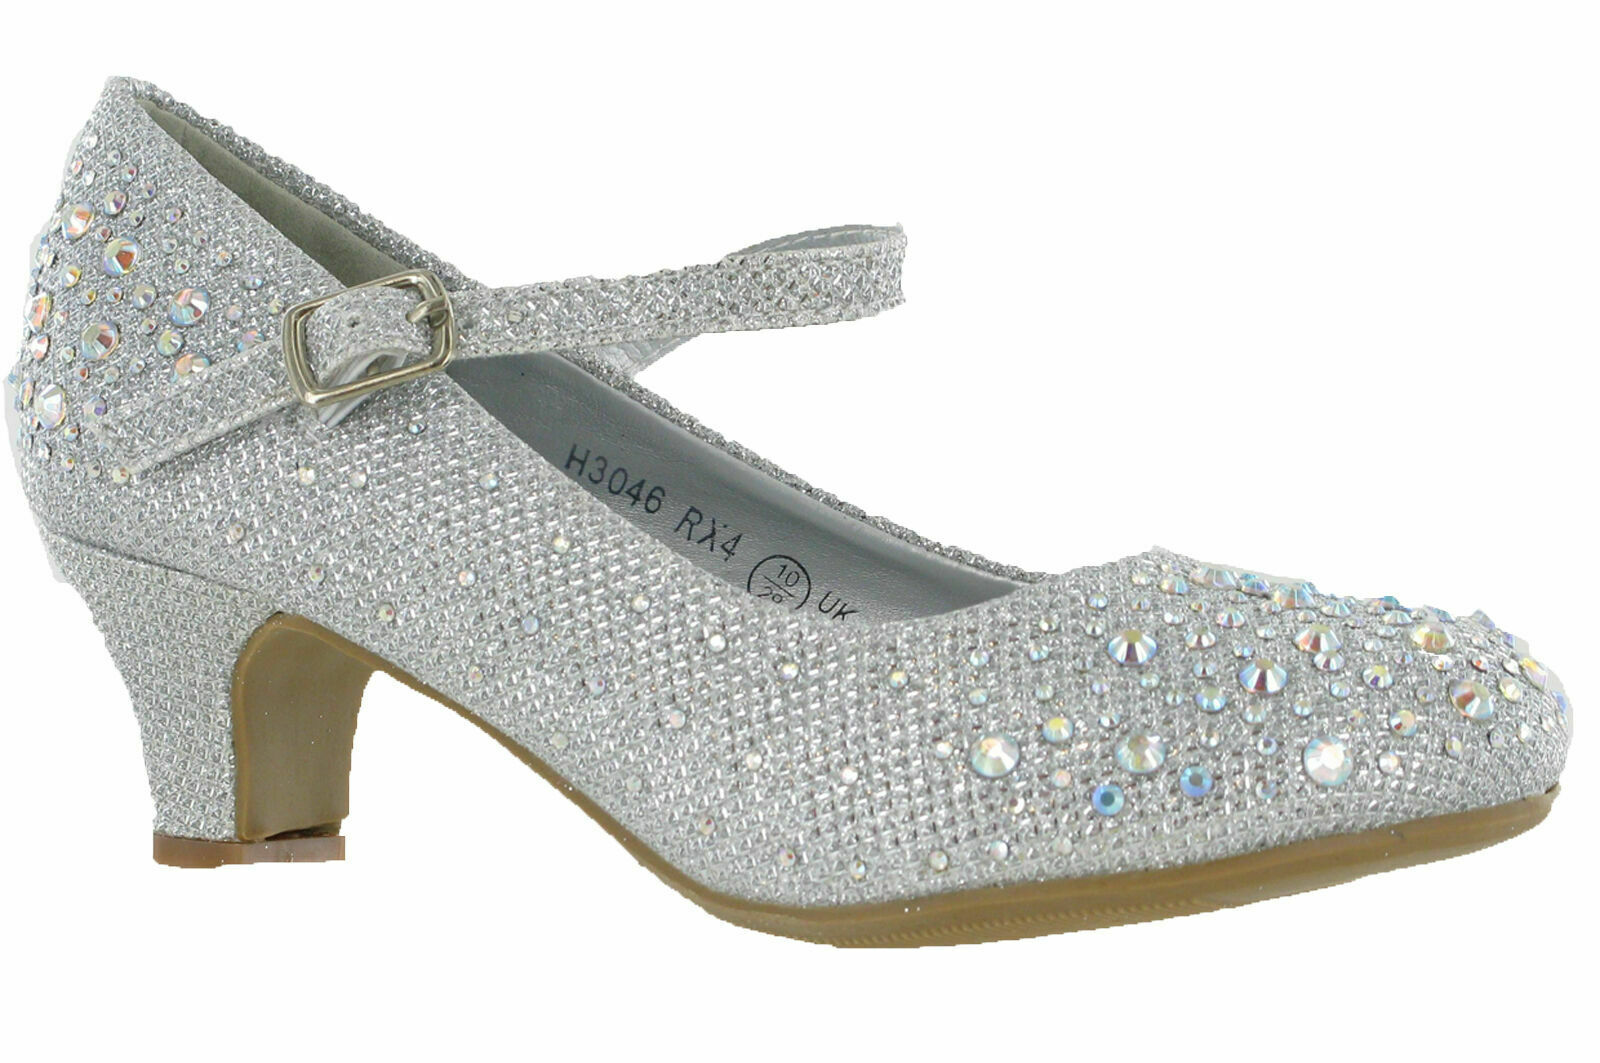 GIRLS GLITTER DIAMANTE BRIDESMAID WEDDING PARTY FANCY SHOES KIDS UK SIZE 10-4